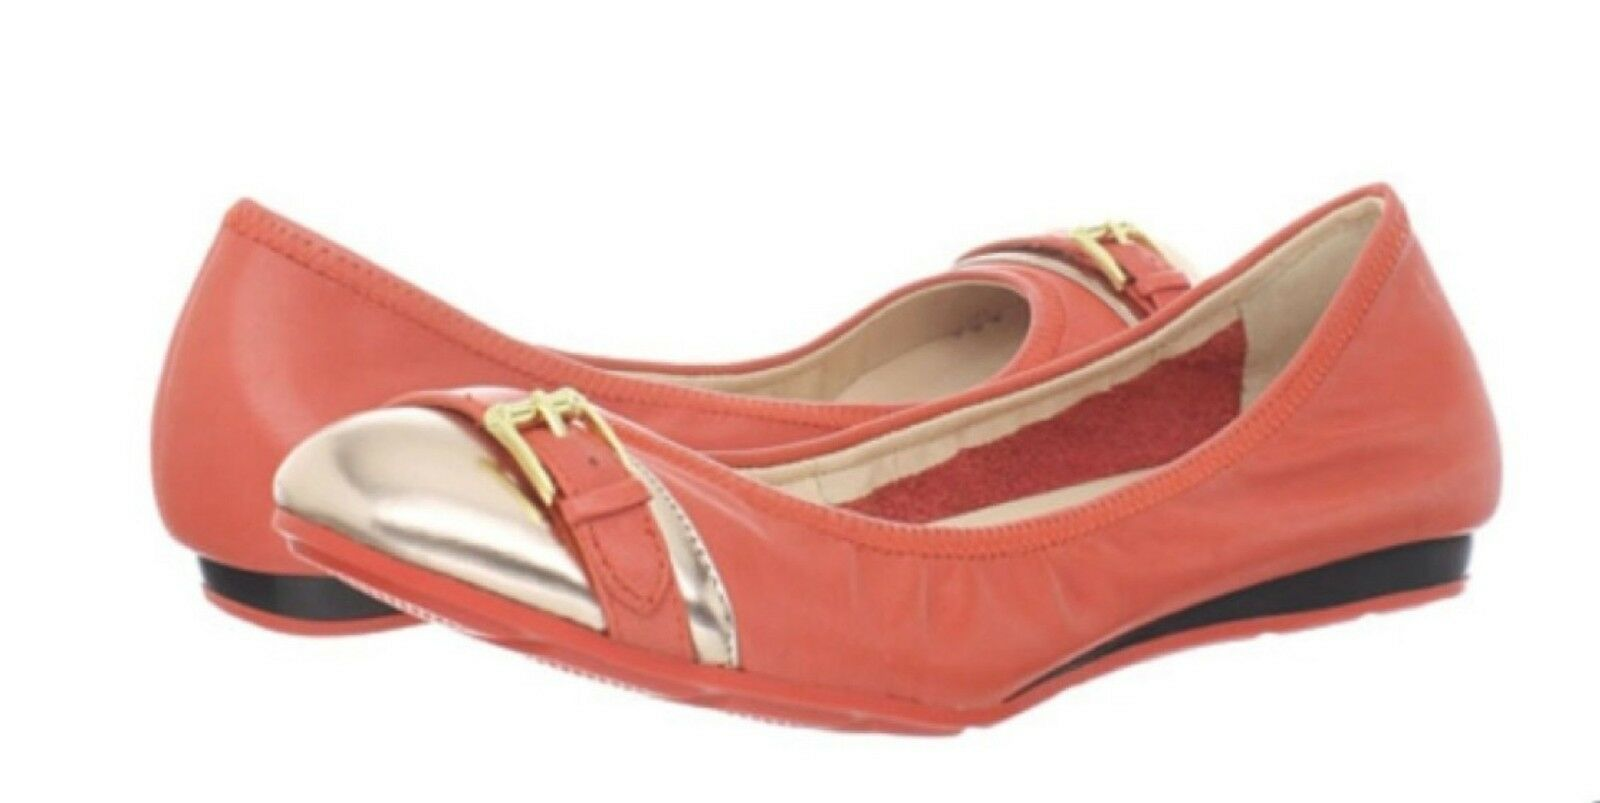 $178 Cole Haan Air Reesa Buckle Ballet Shoes Womens 10 Orange Gold NEW IN BOX